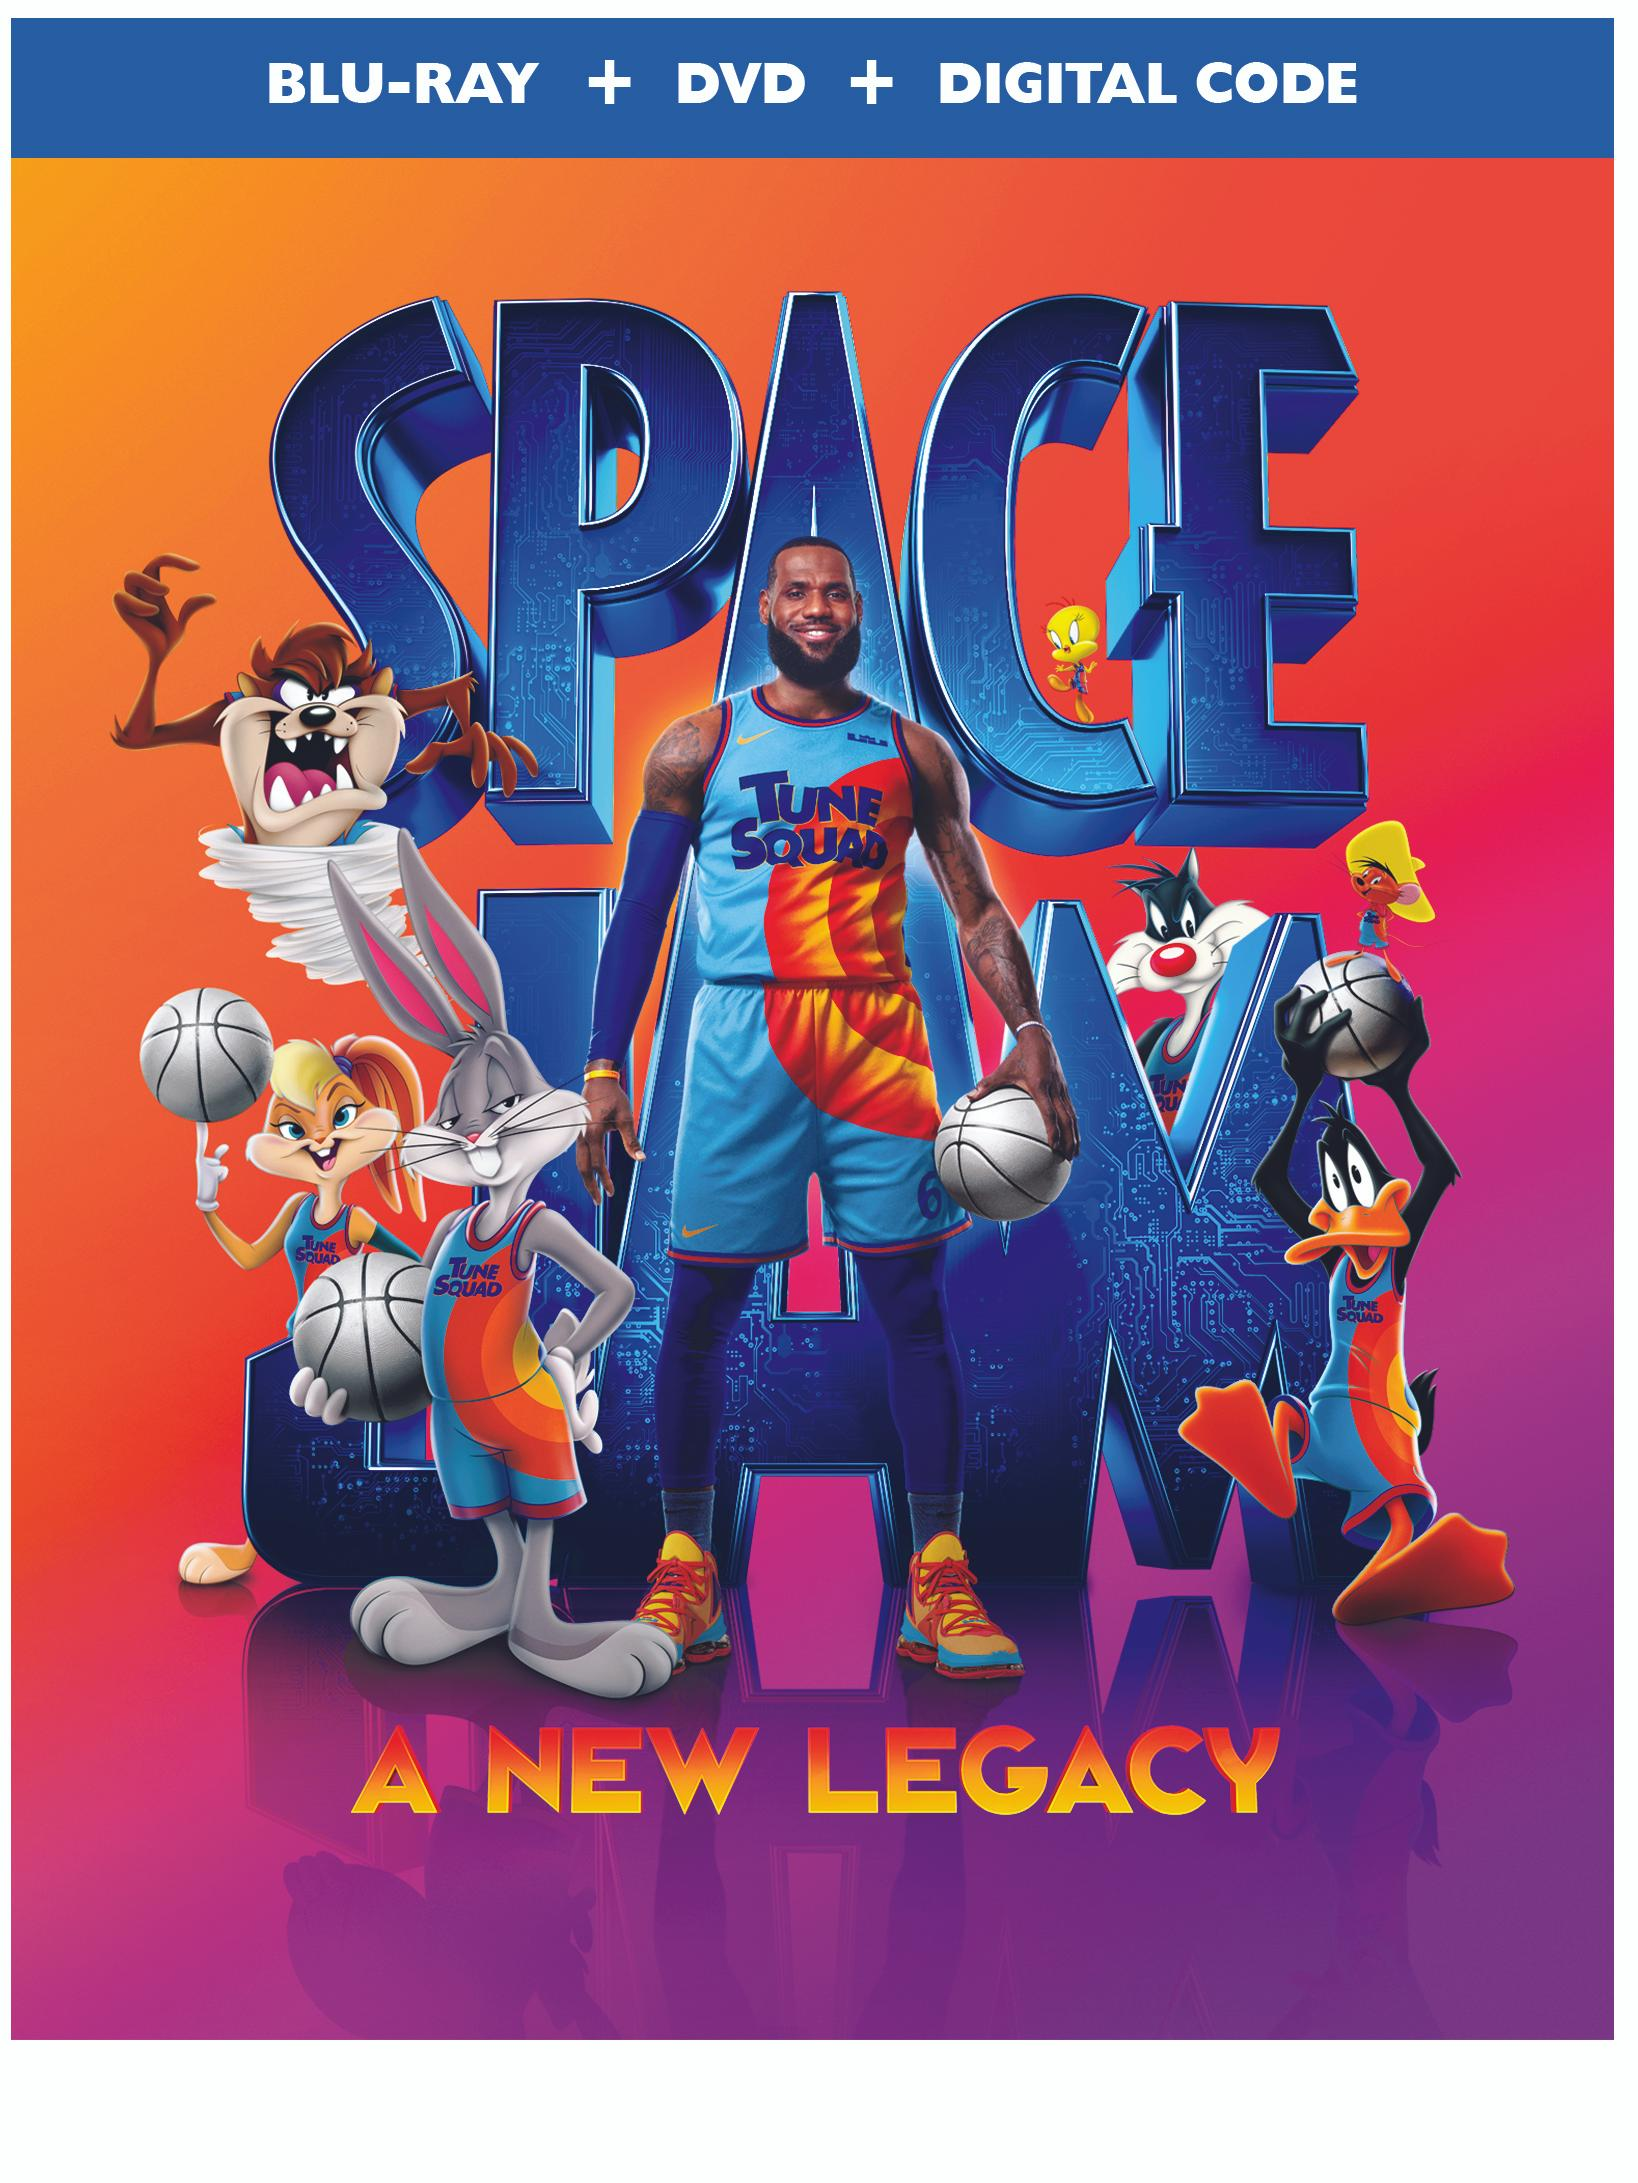 Space Jam: A New Legacy 4K, Blu-ray & DVD Release Info